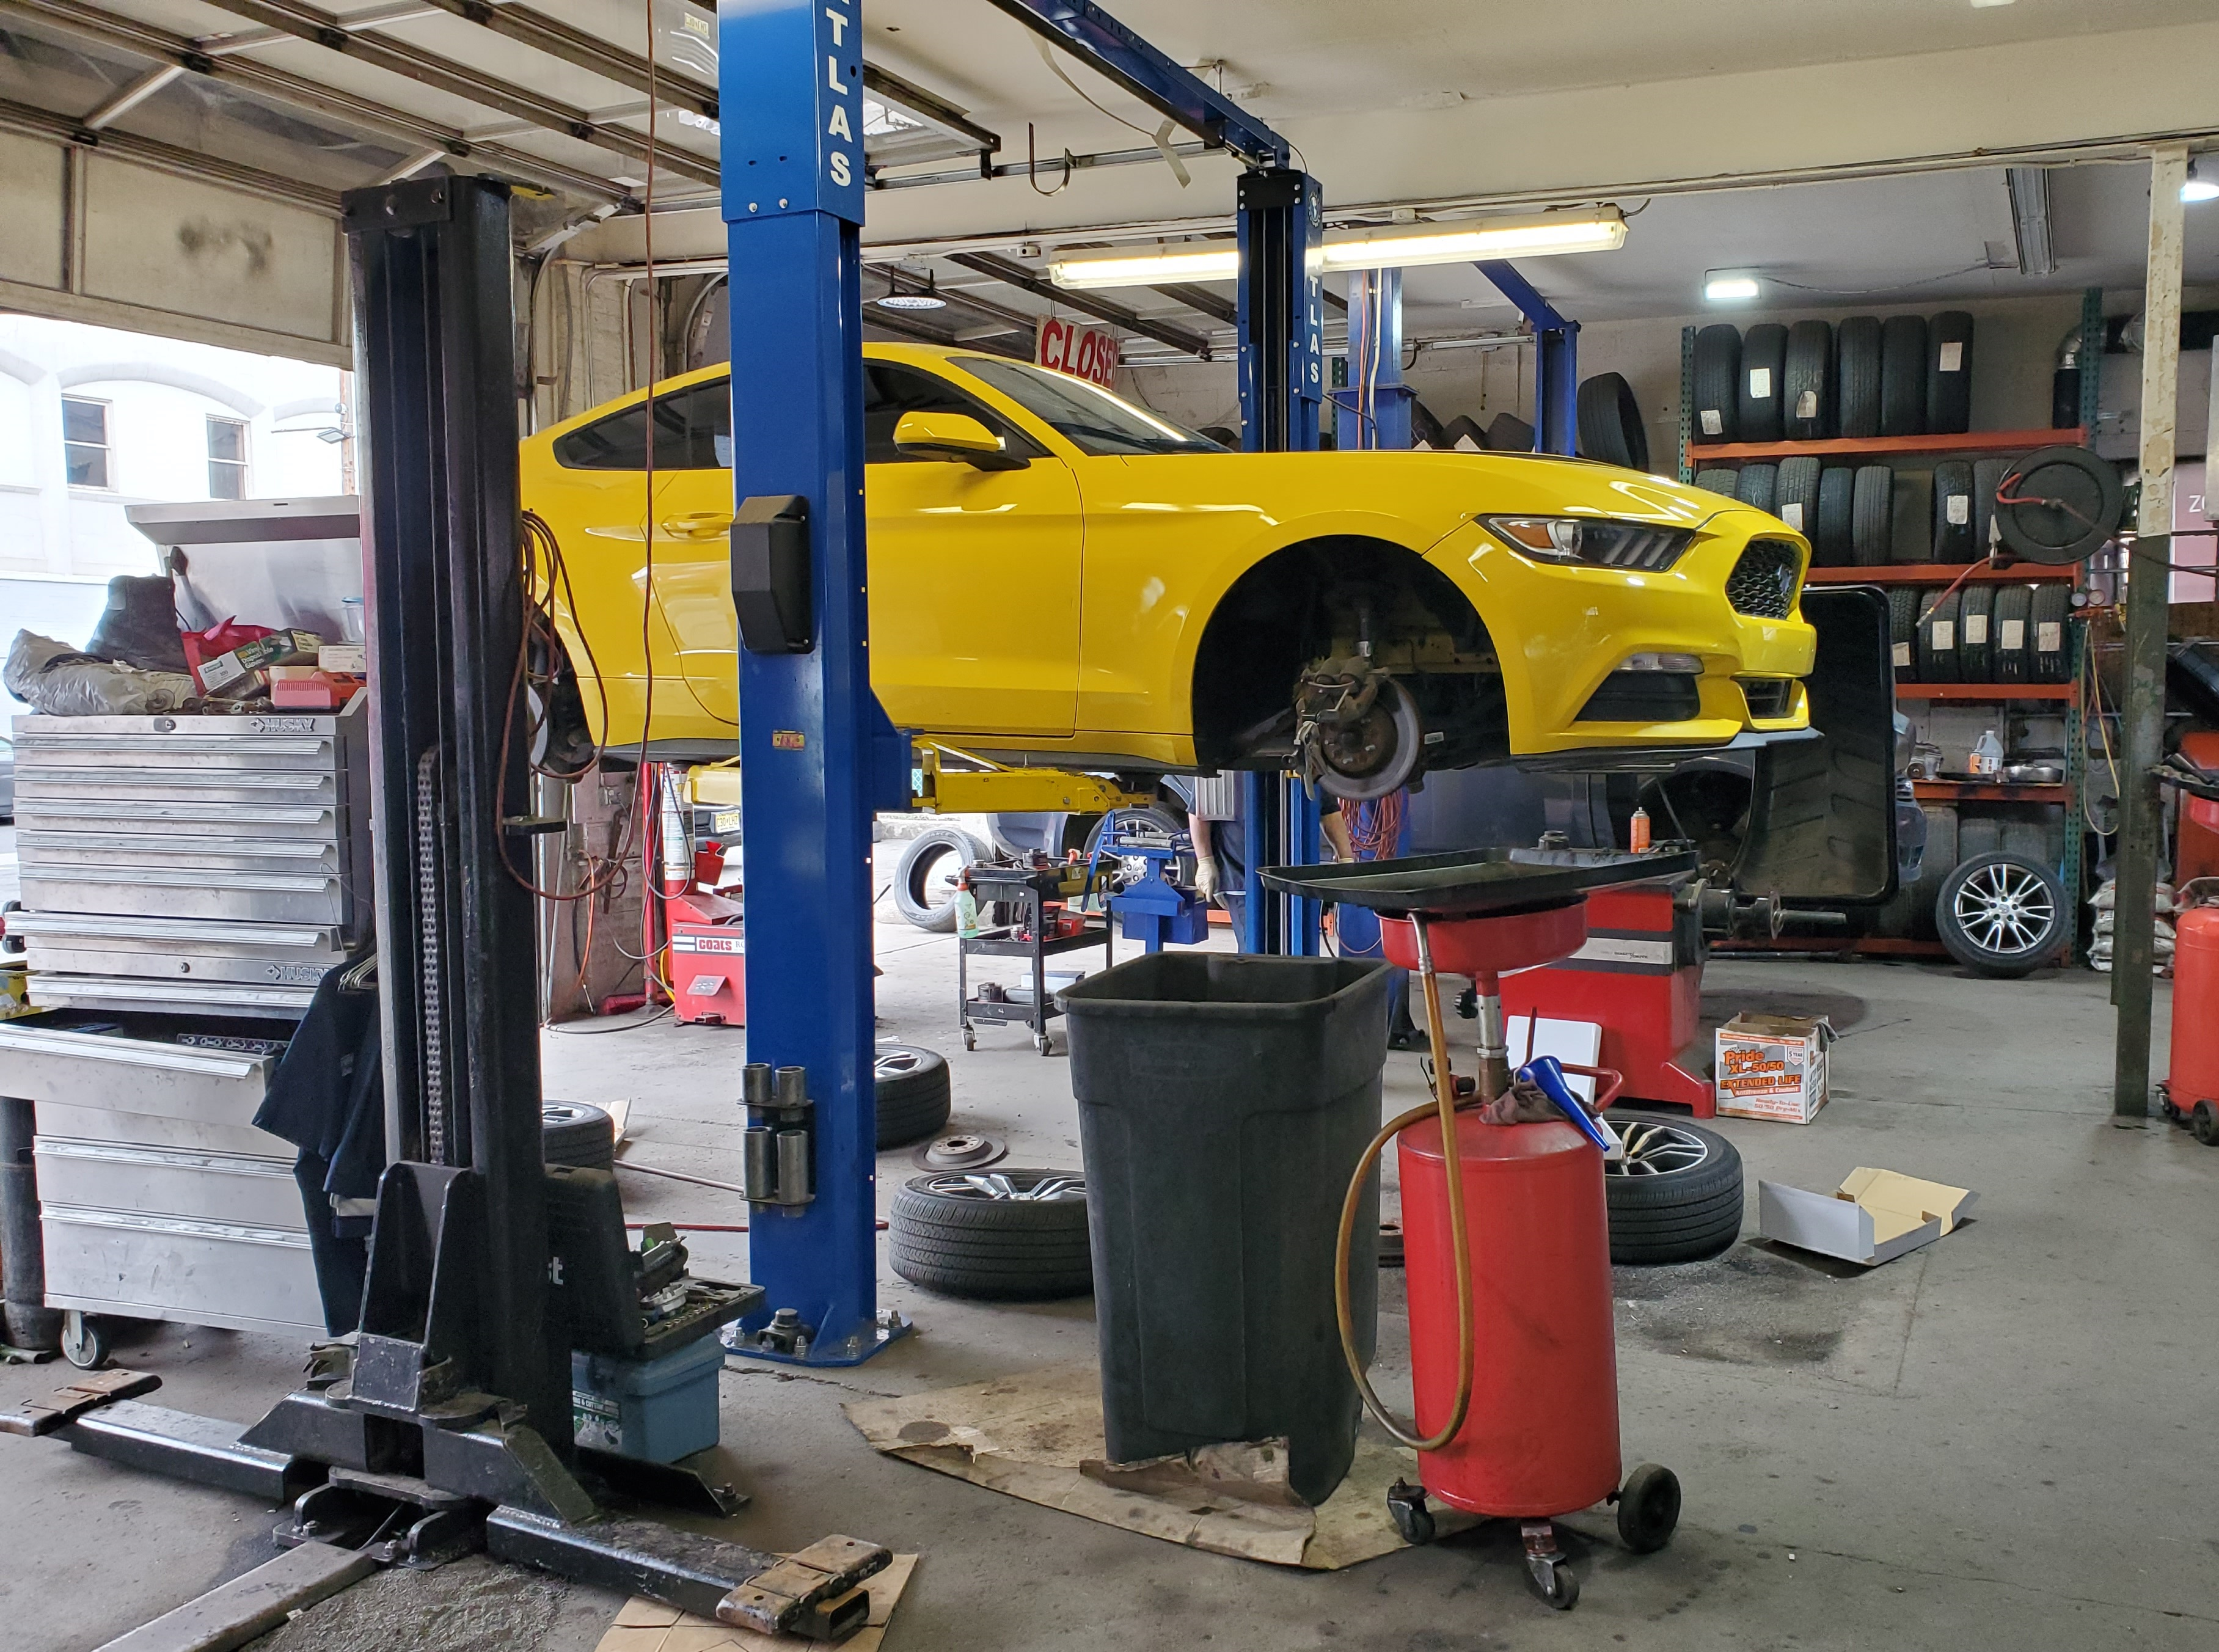 Unbranded Gas & Auto Repair Shop for sale in NJ